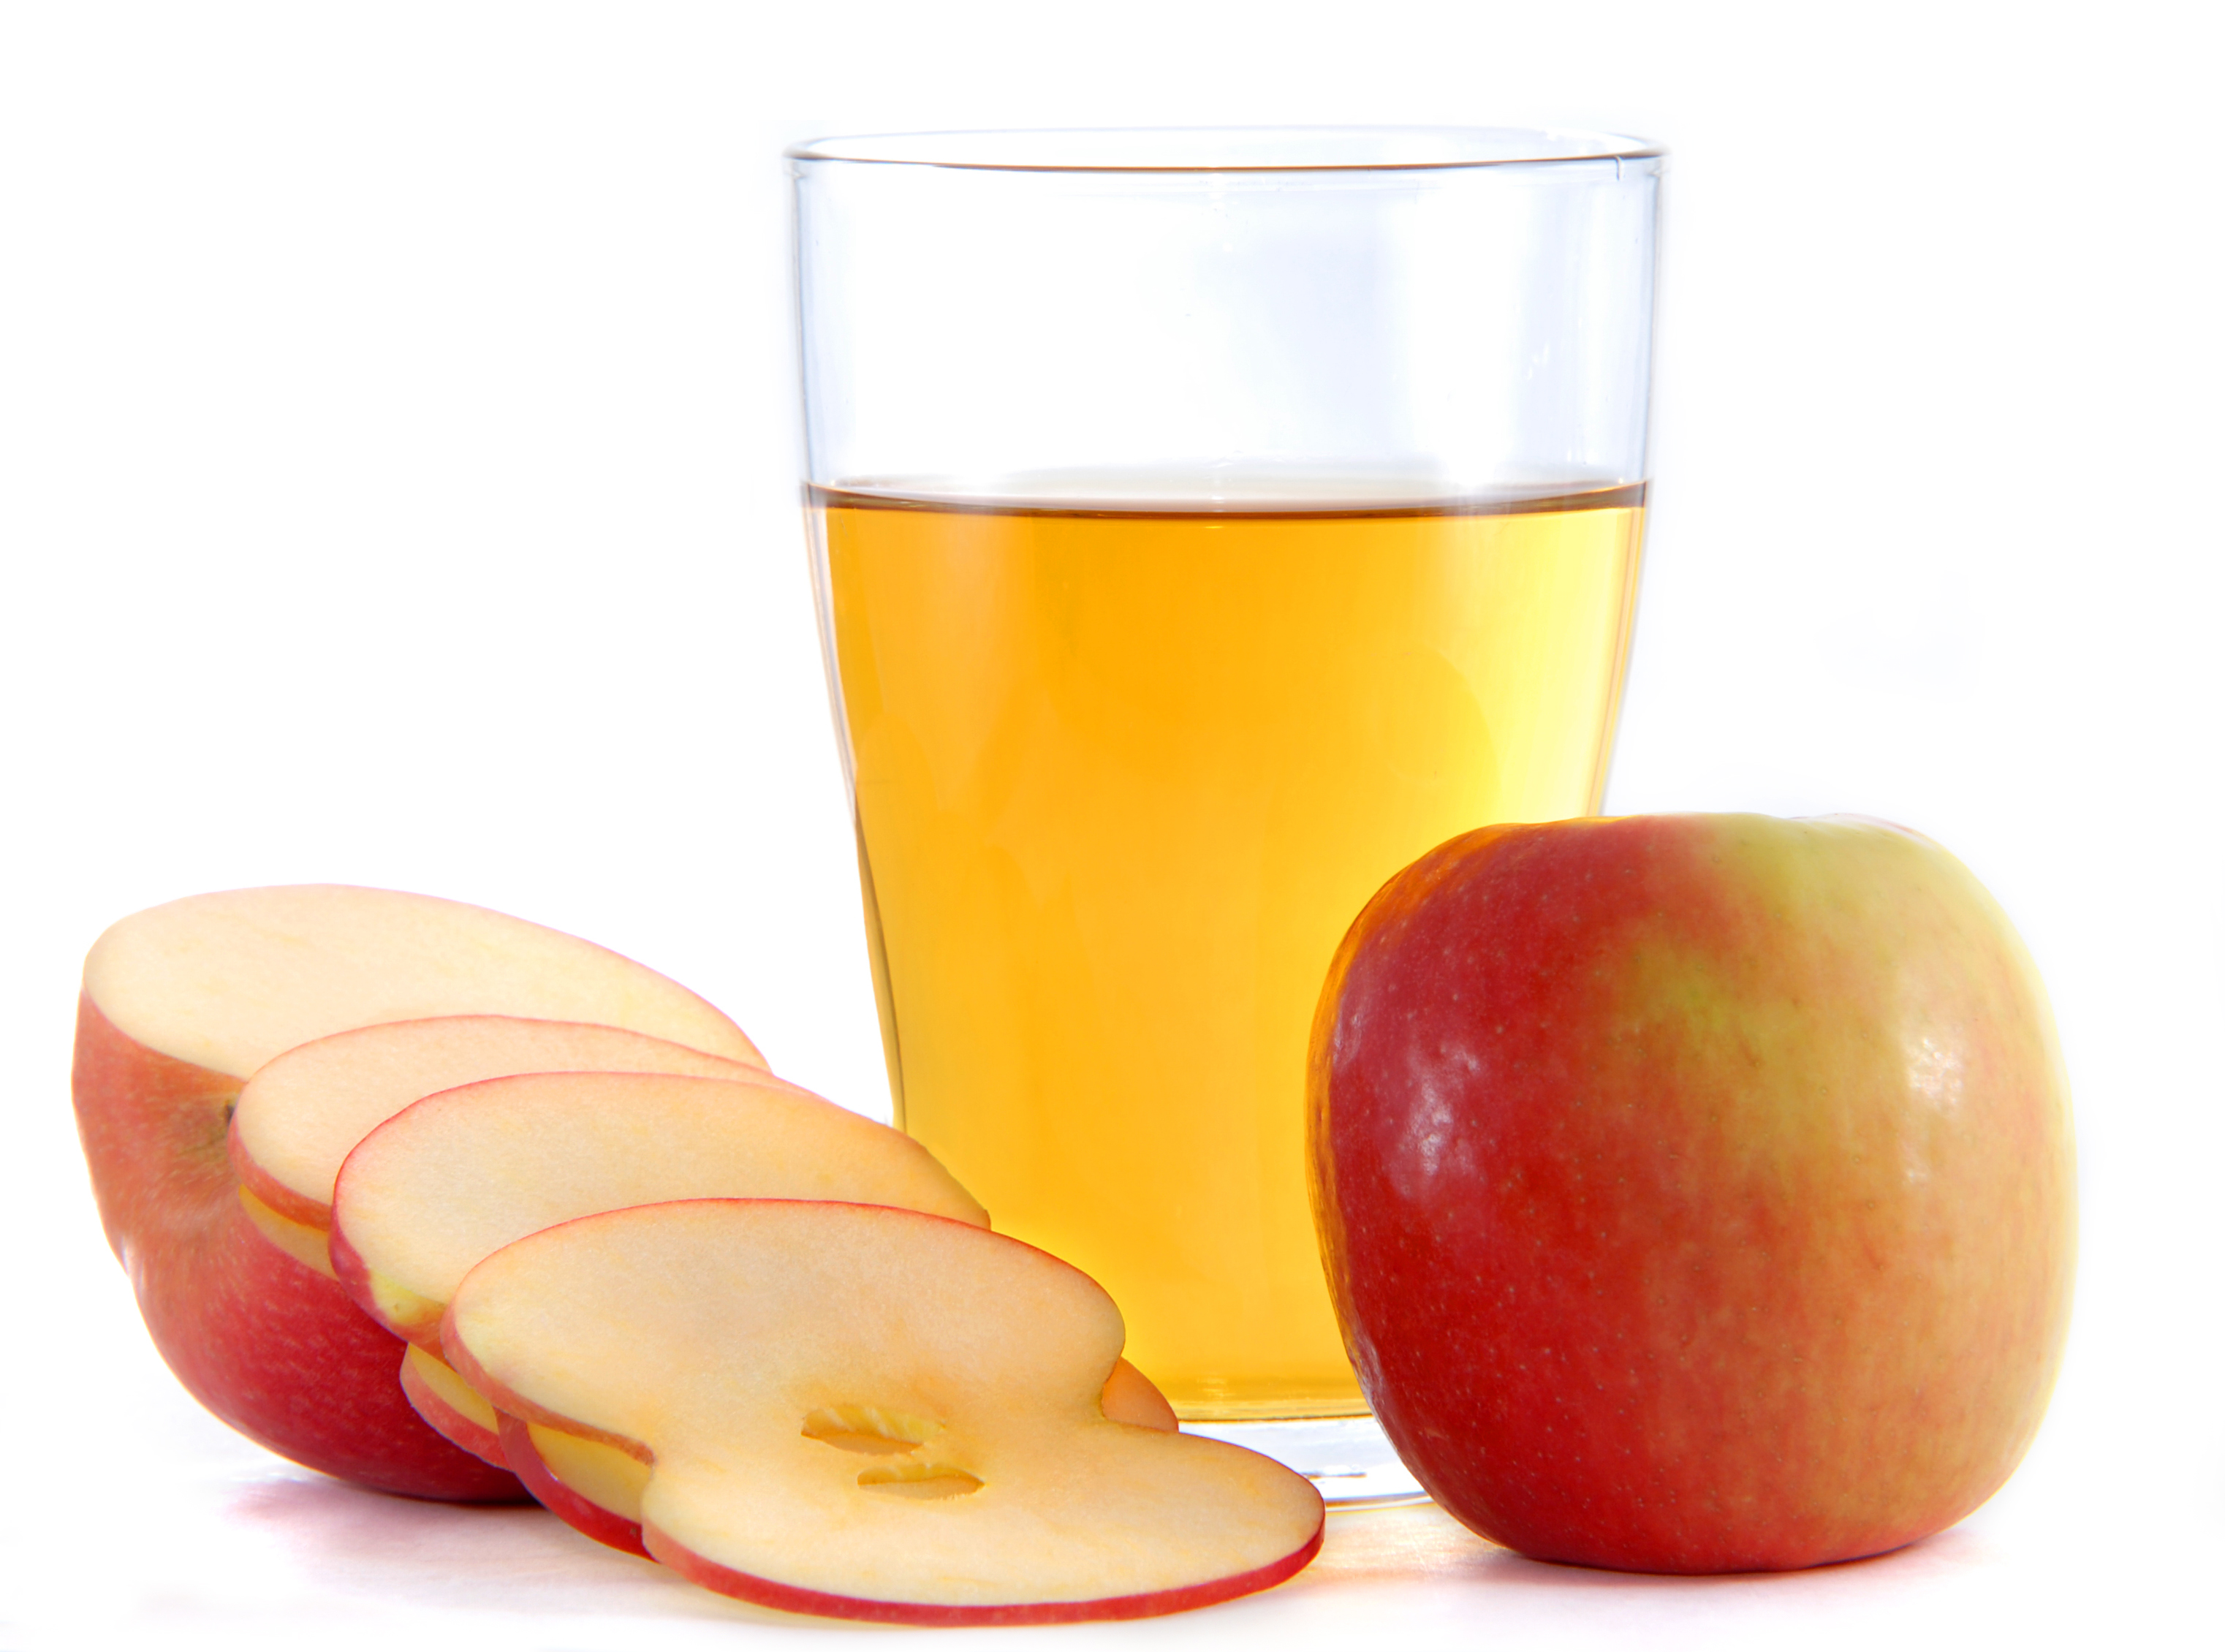 apple cider vinegar in a glass next to an apple and apple slices